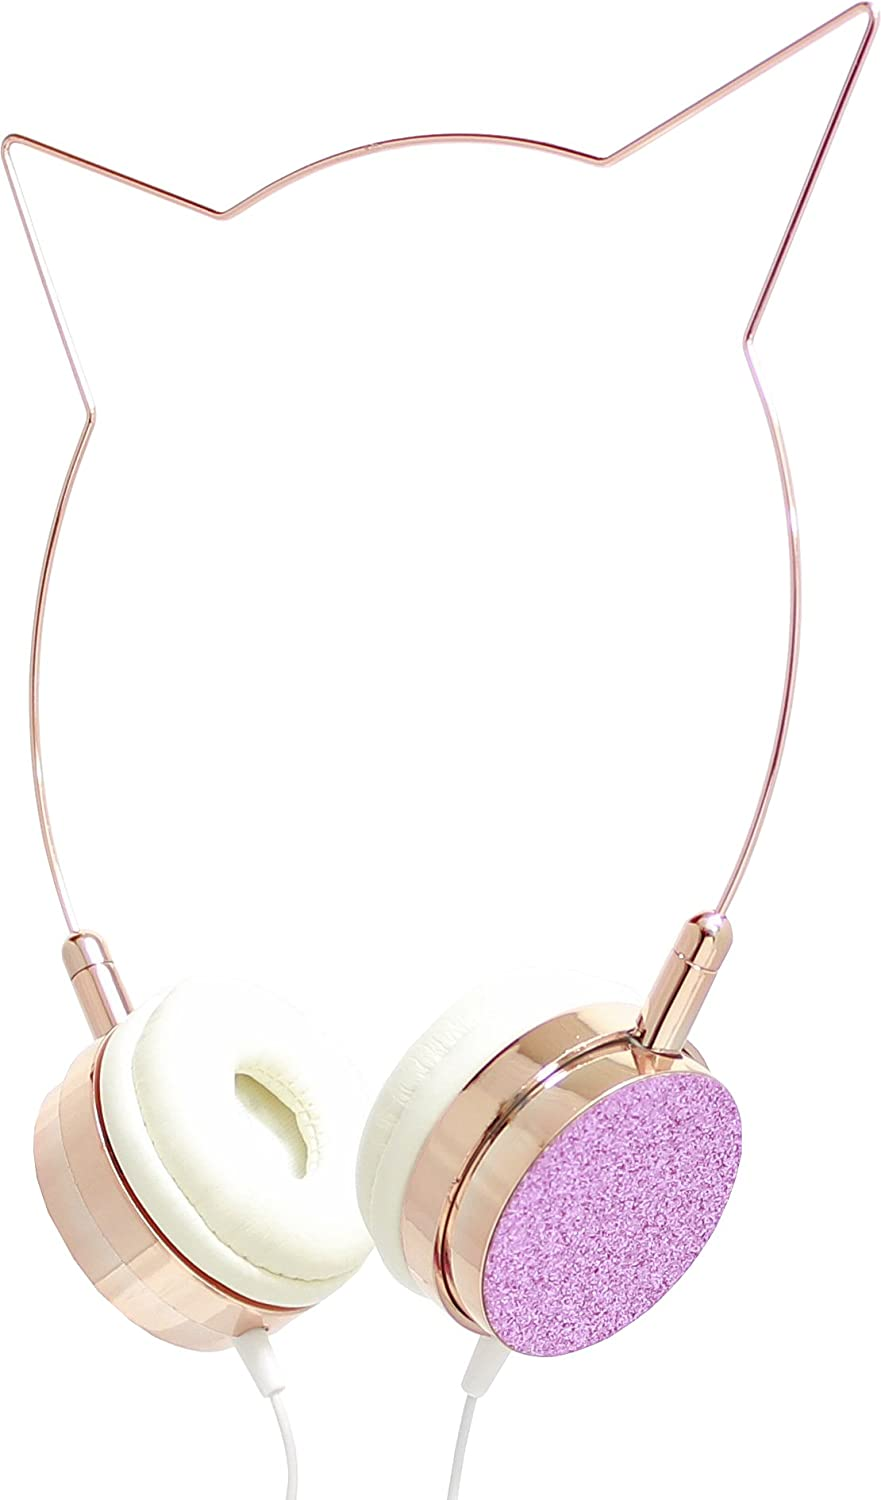 Kitty Cat Ear Headphones Wire Frame Headset With 30 Ddm To Audio Level Meter Volume Control And Microphone Rose Gold Crystal Toys Games